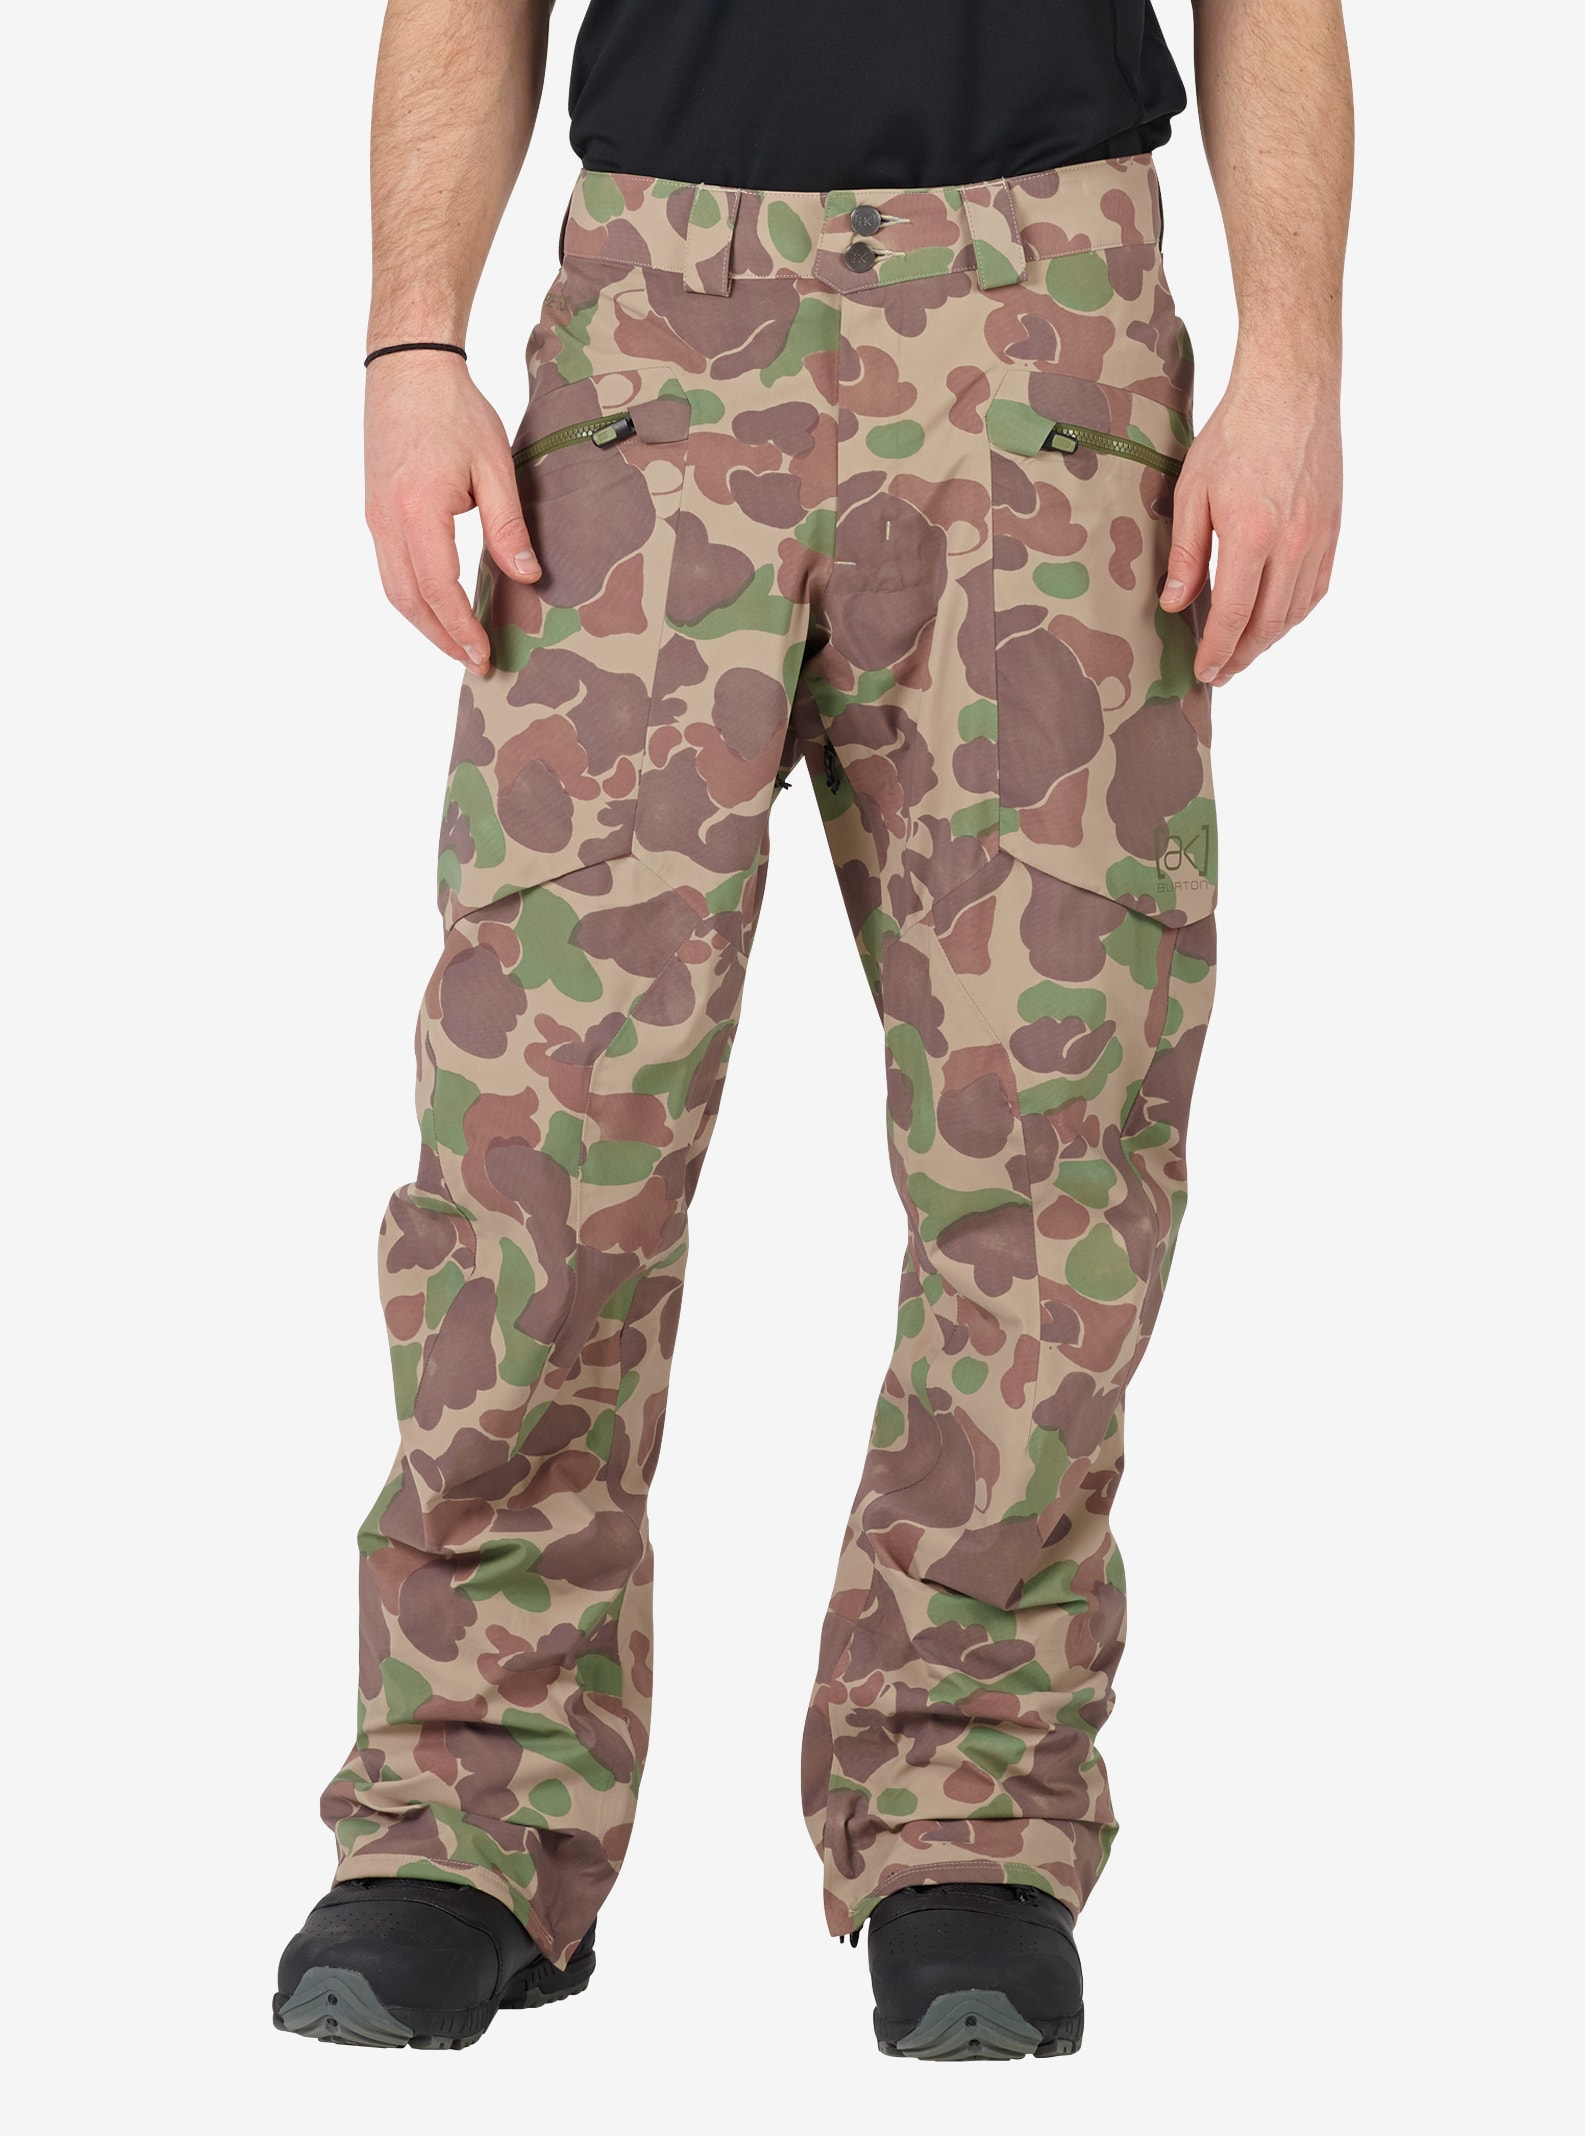 Men's Burton [ak] GORE‑TEX® 3L Hover Pant shown in Kodiak Camo